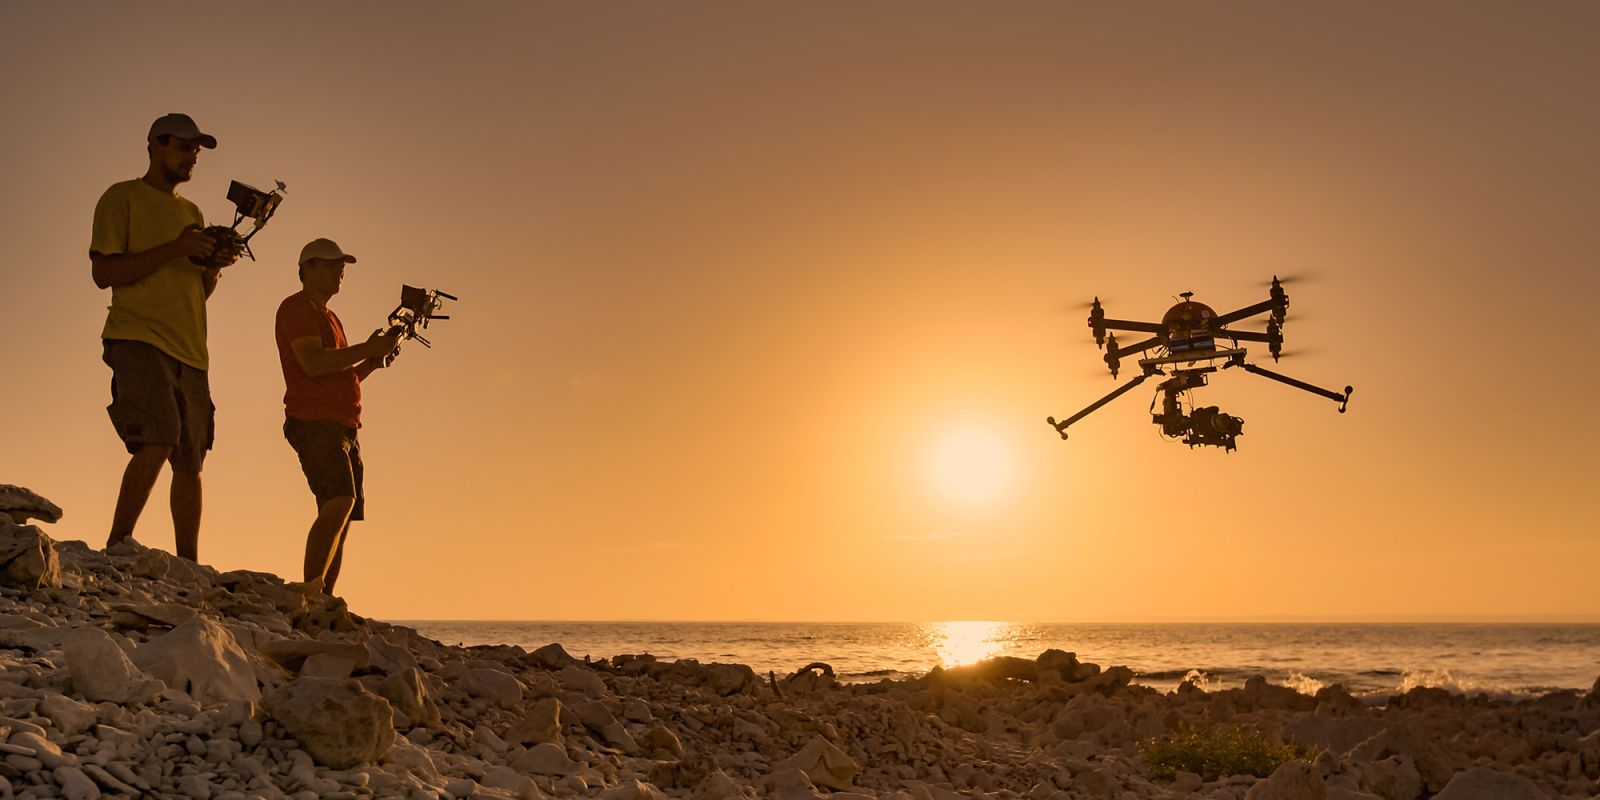 A picture of two mean flying drones on a beach, with the sunset in the background, on the brand video production page.